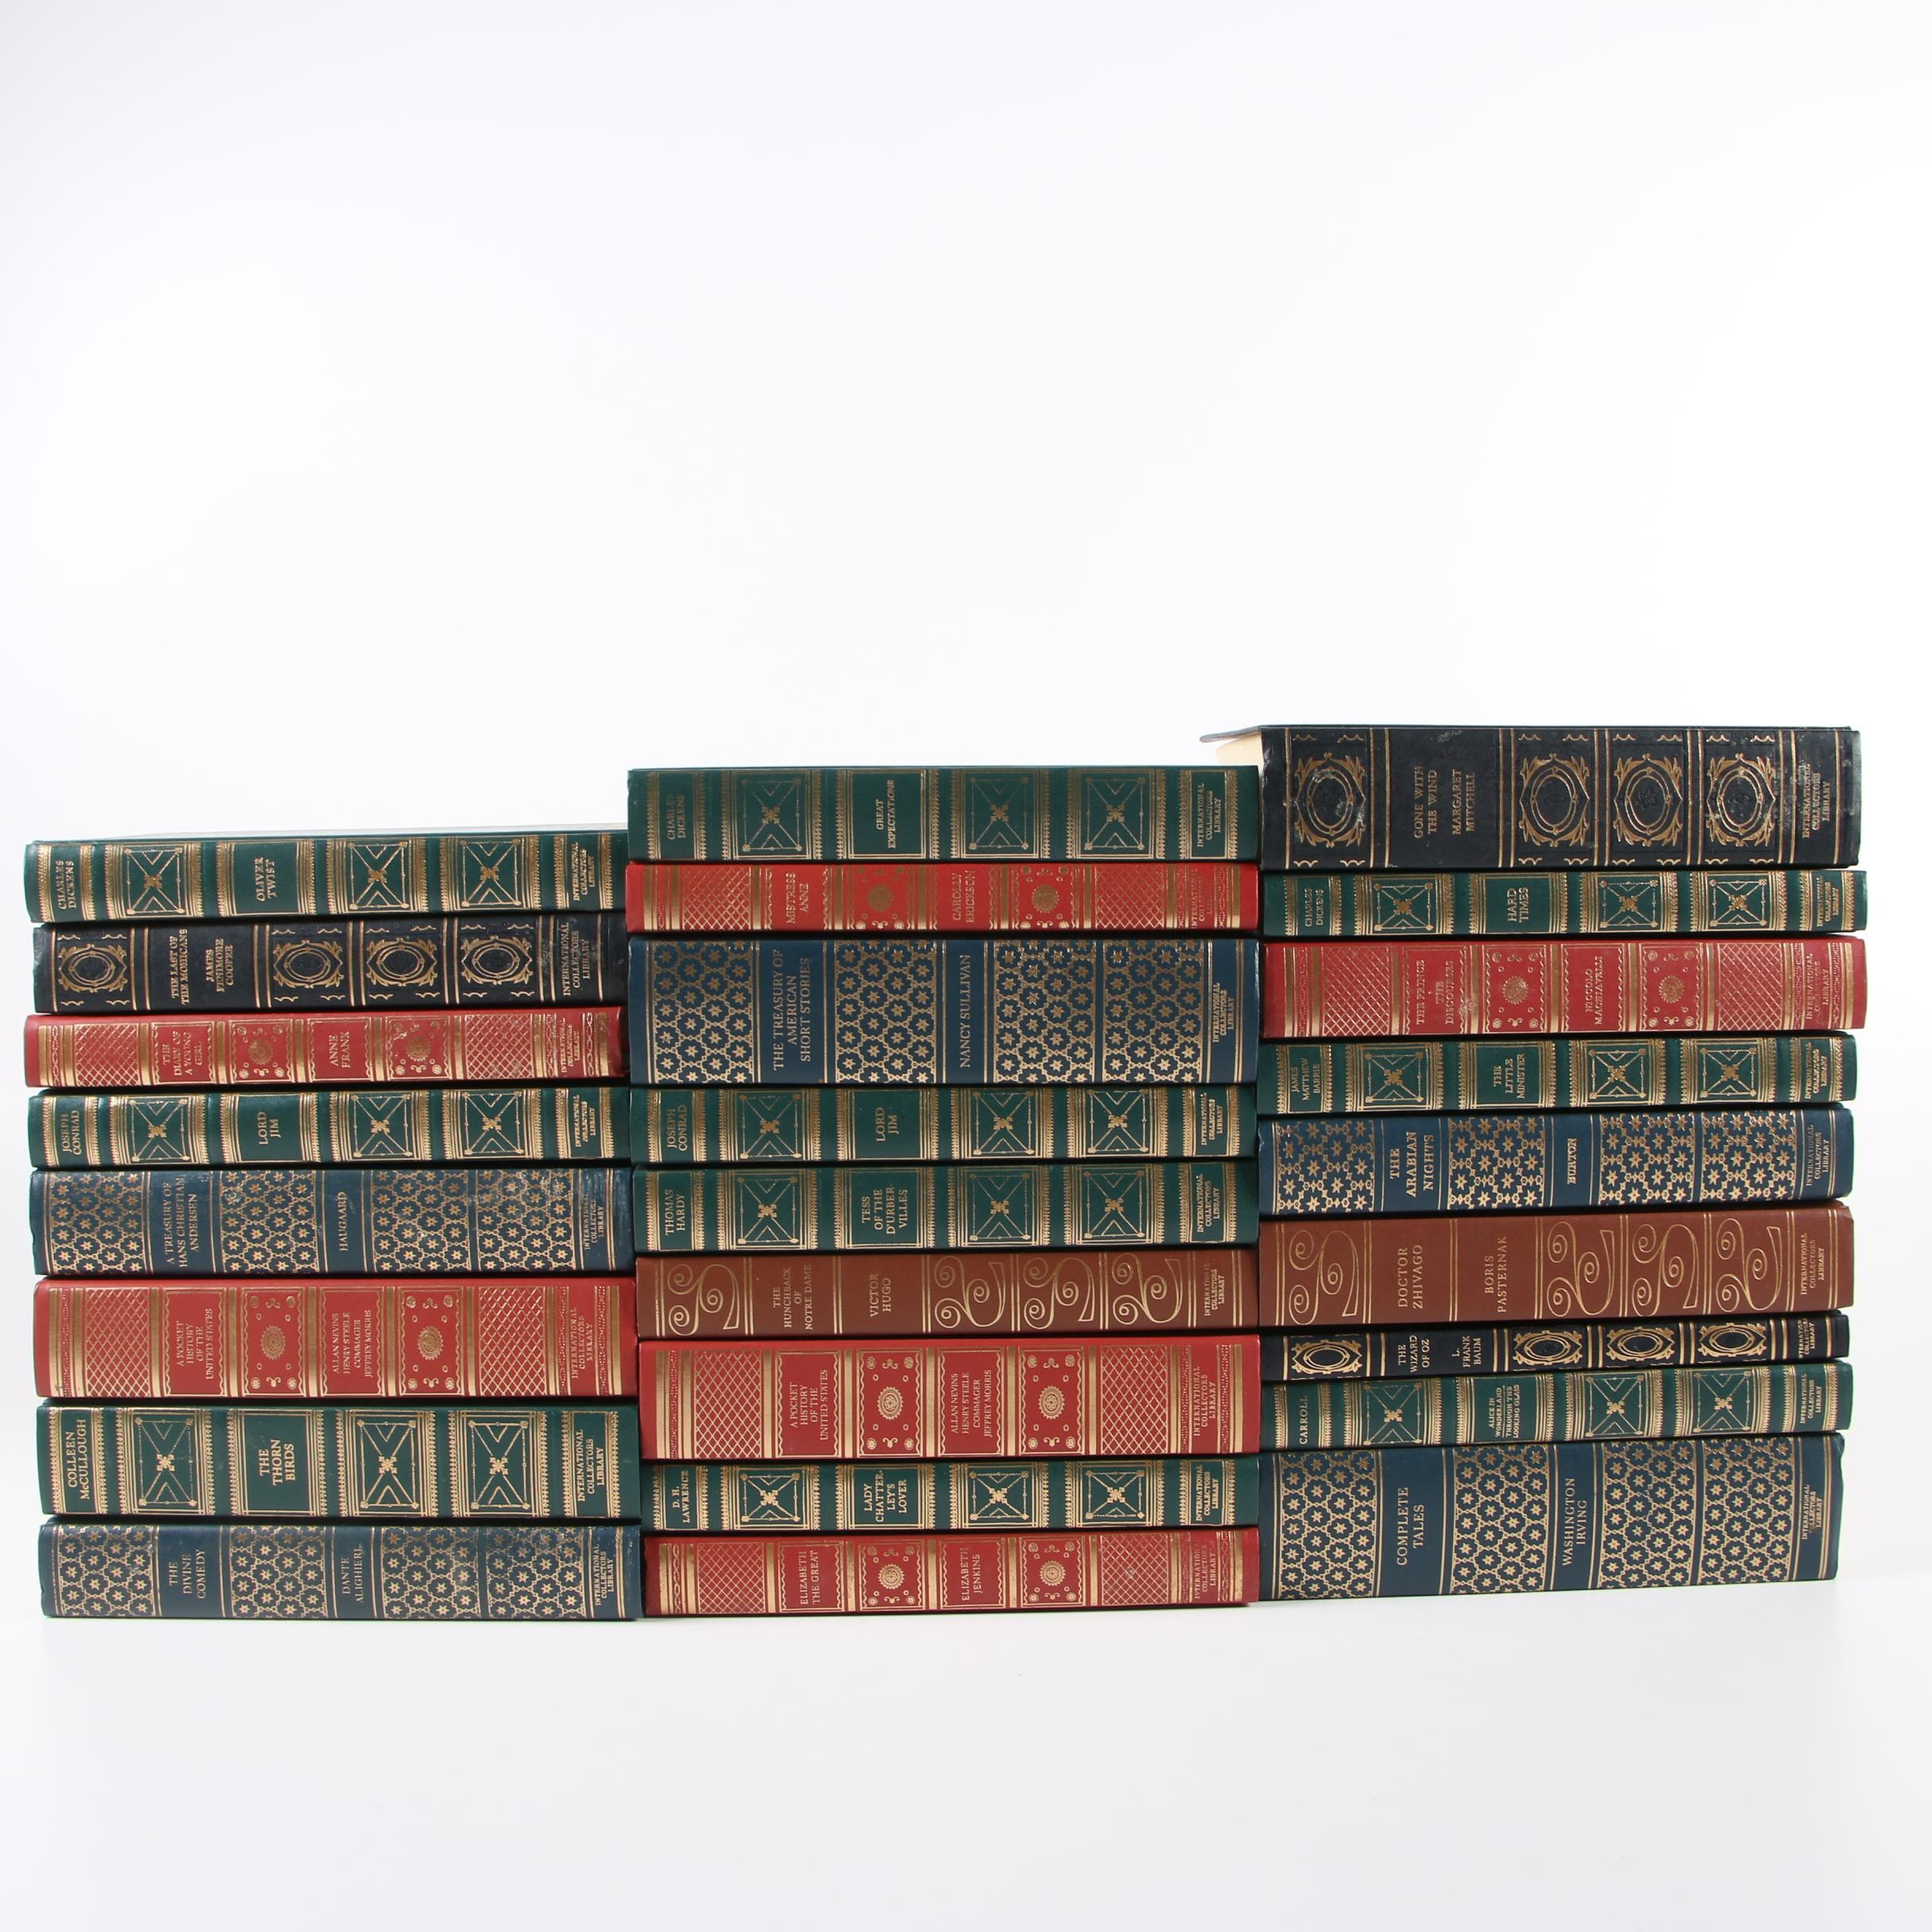 International Collectors Library Books including Dante, Dickens, Hugo, and Hardy